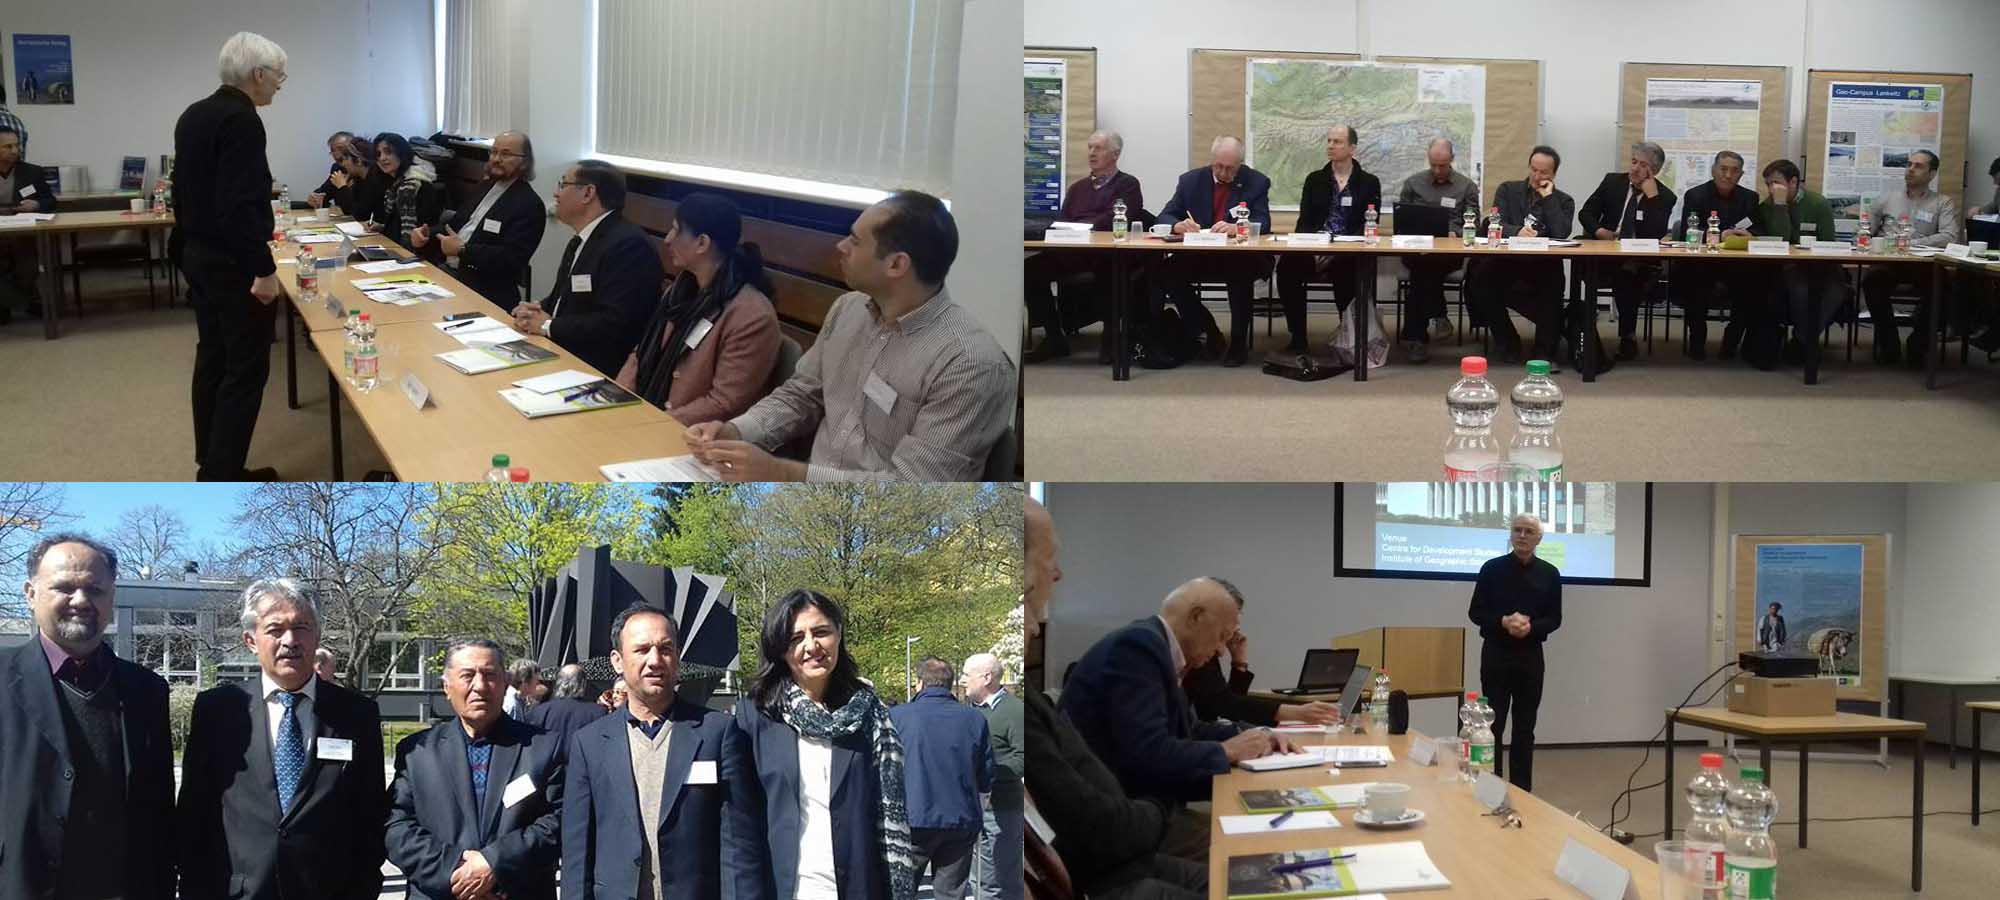 Scholars, researchers, development practitioners gather in Berlin to discuss 'Pamirs at crossroads'